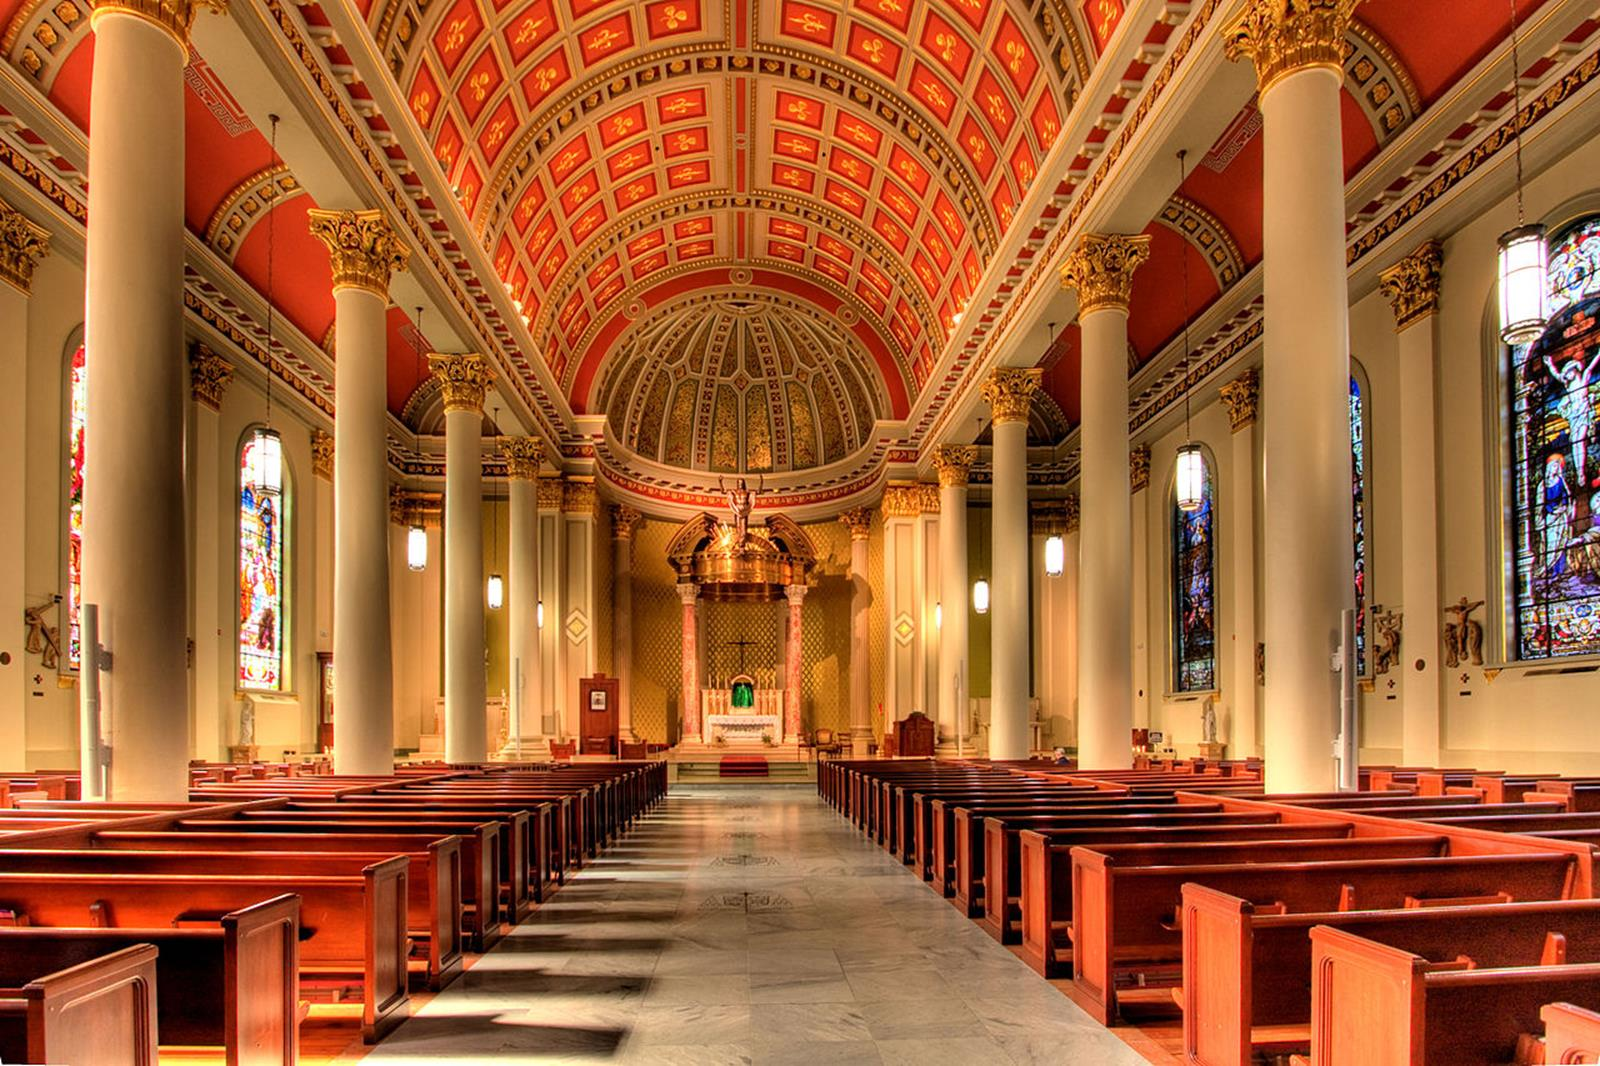 Cathedral of the Immaculate Conception Interior